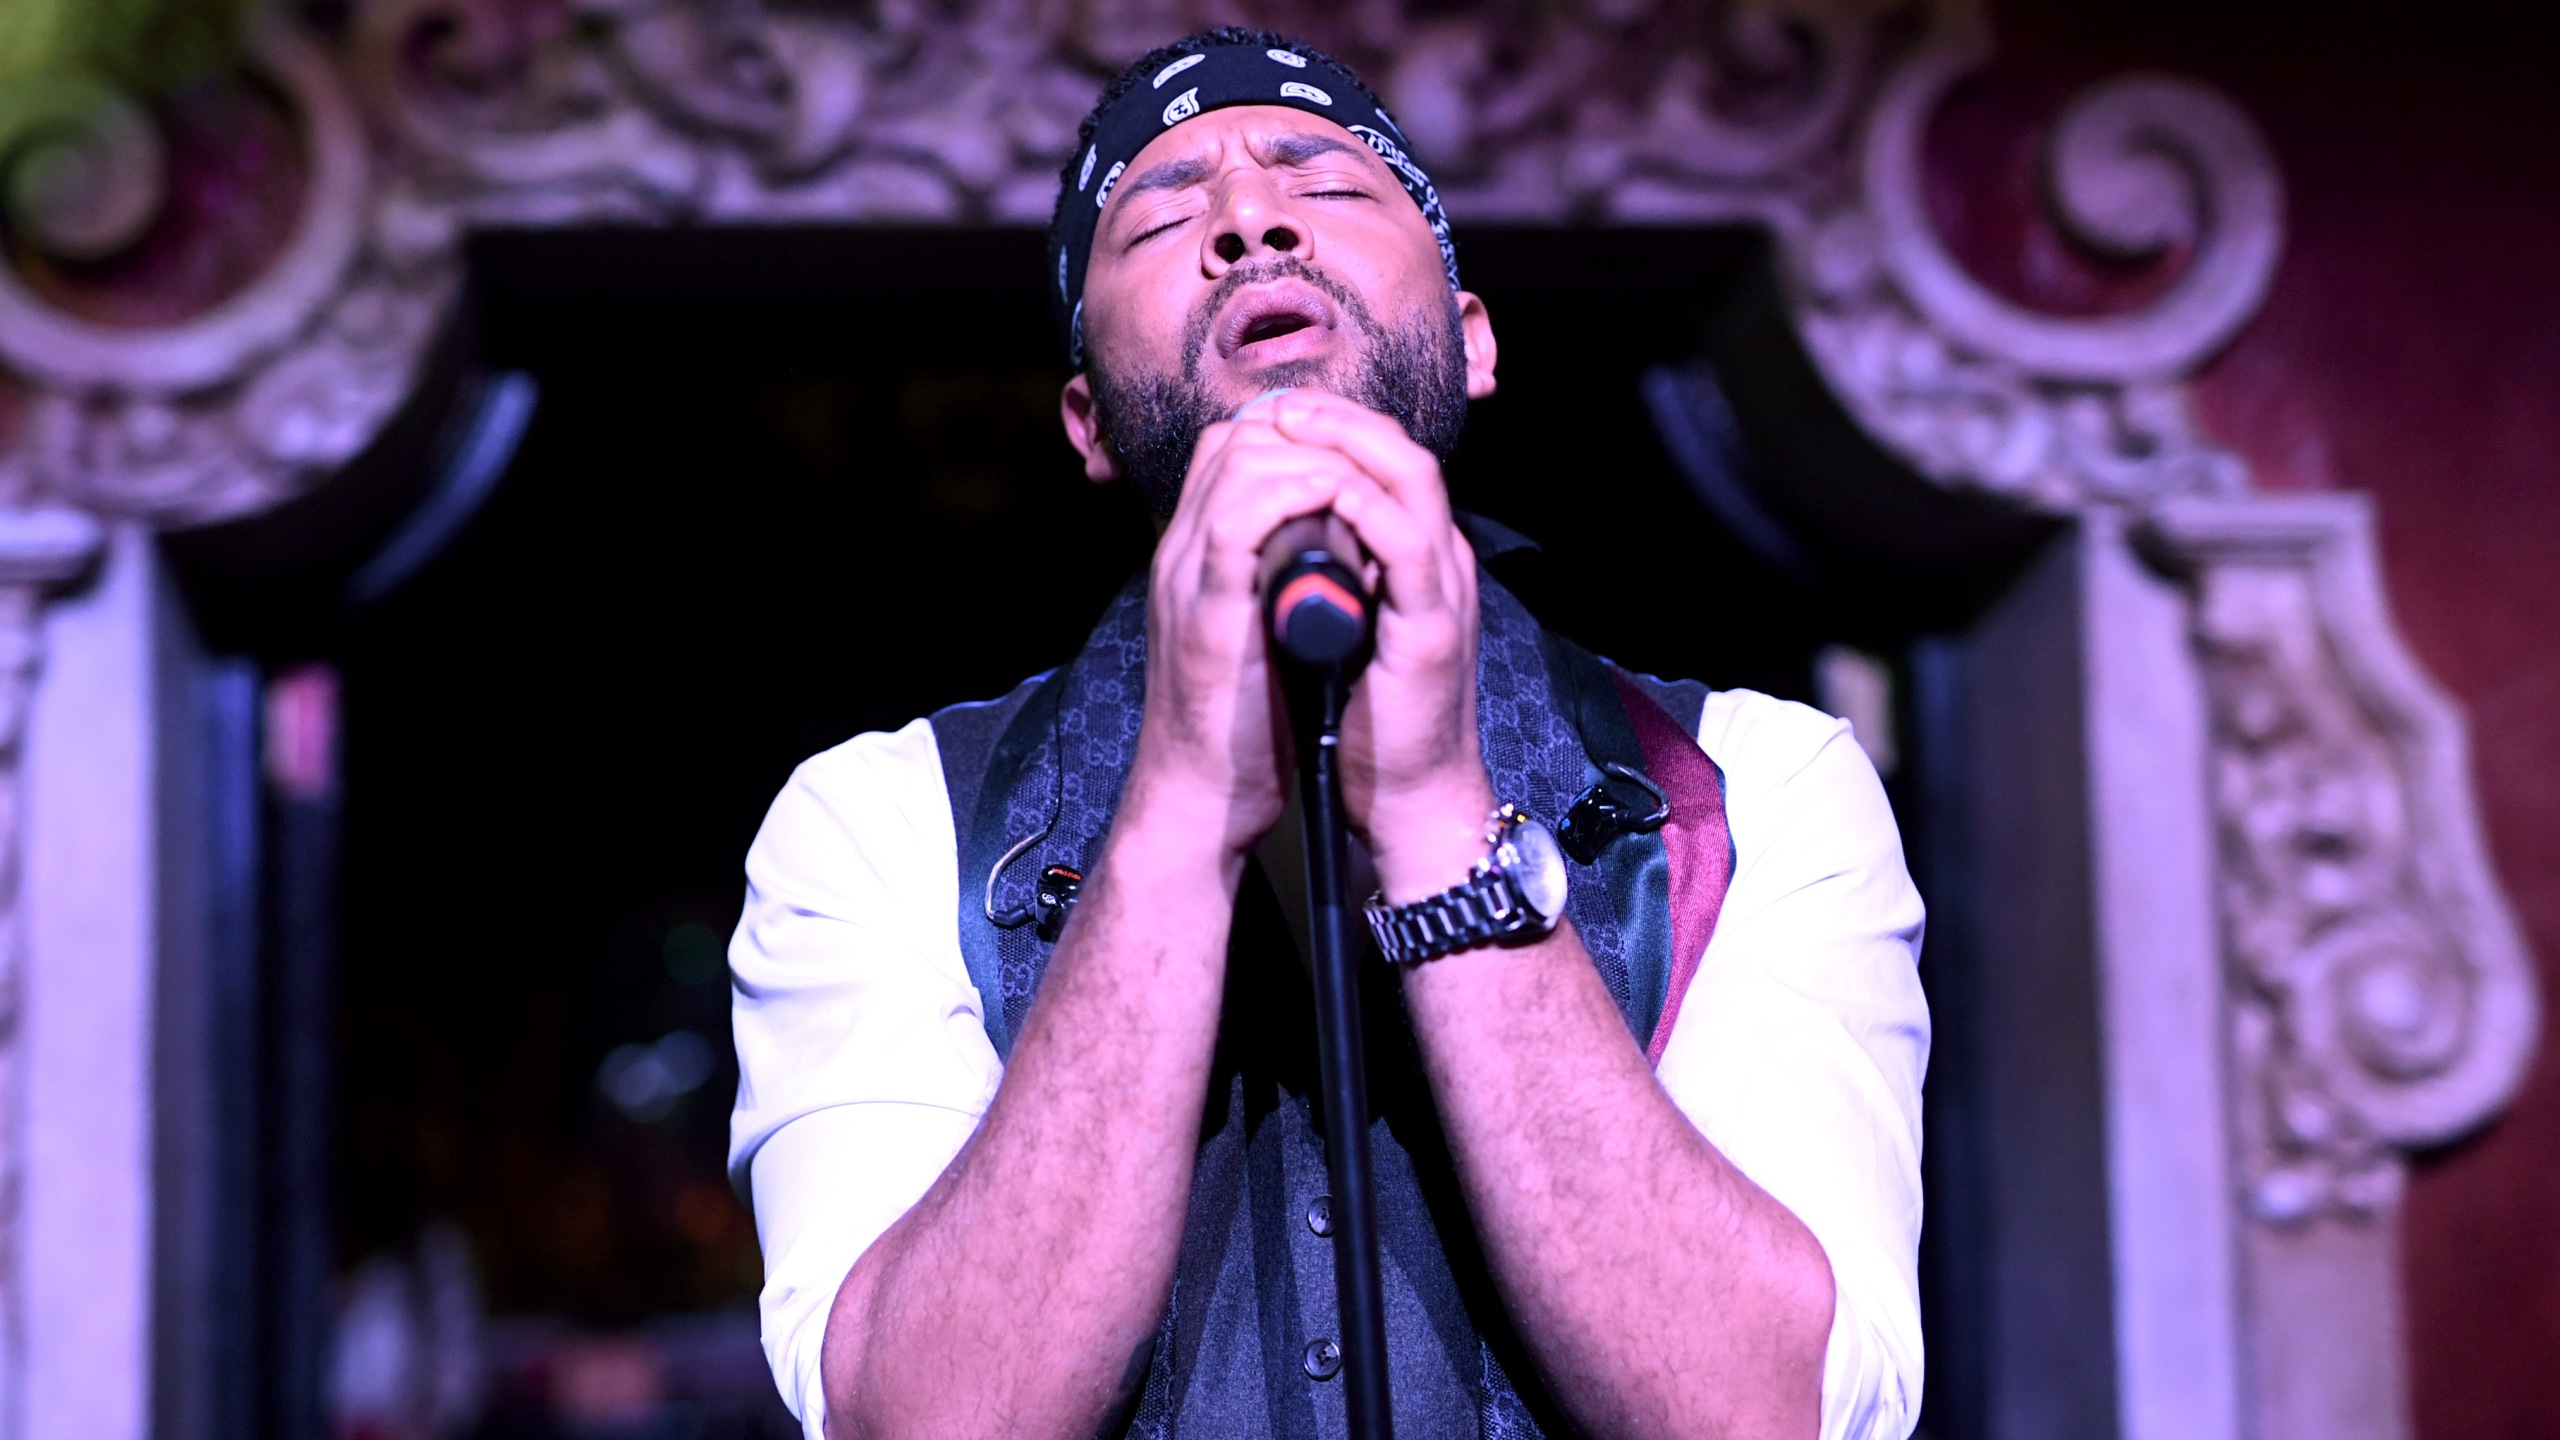 Jussie Smollett performs onstage during amfAR's Dance2Cure event at Bardot in Hollywood on Dec. 1, 2018. (Credit: Emma McIntyre / Getty Images)